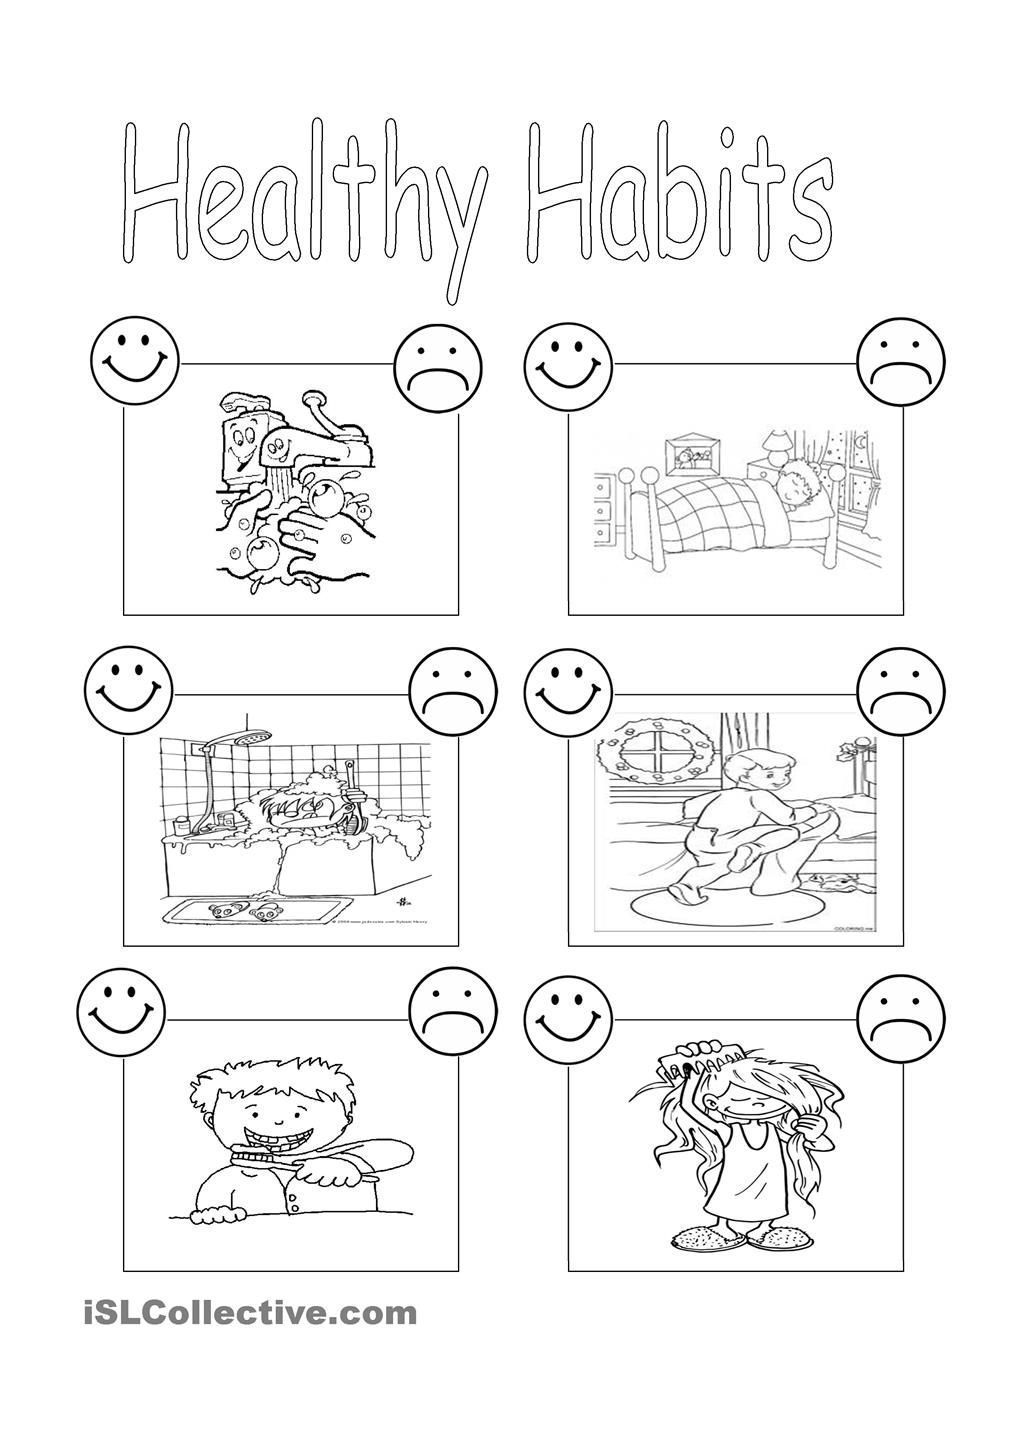 Worksheets 3rd Grade Health Worksheets pin by myla cortez on toddlerhood training pinterest worksheets healthy habits worksheet free esl printable made teachers